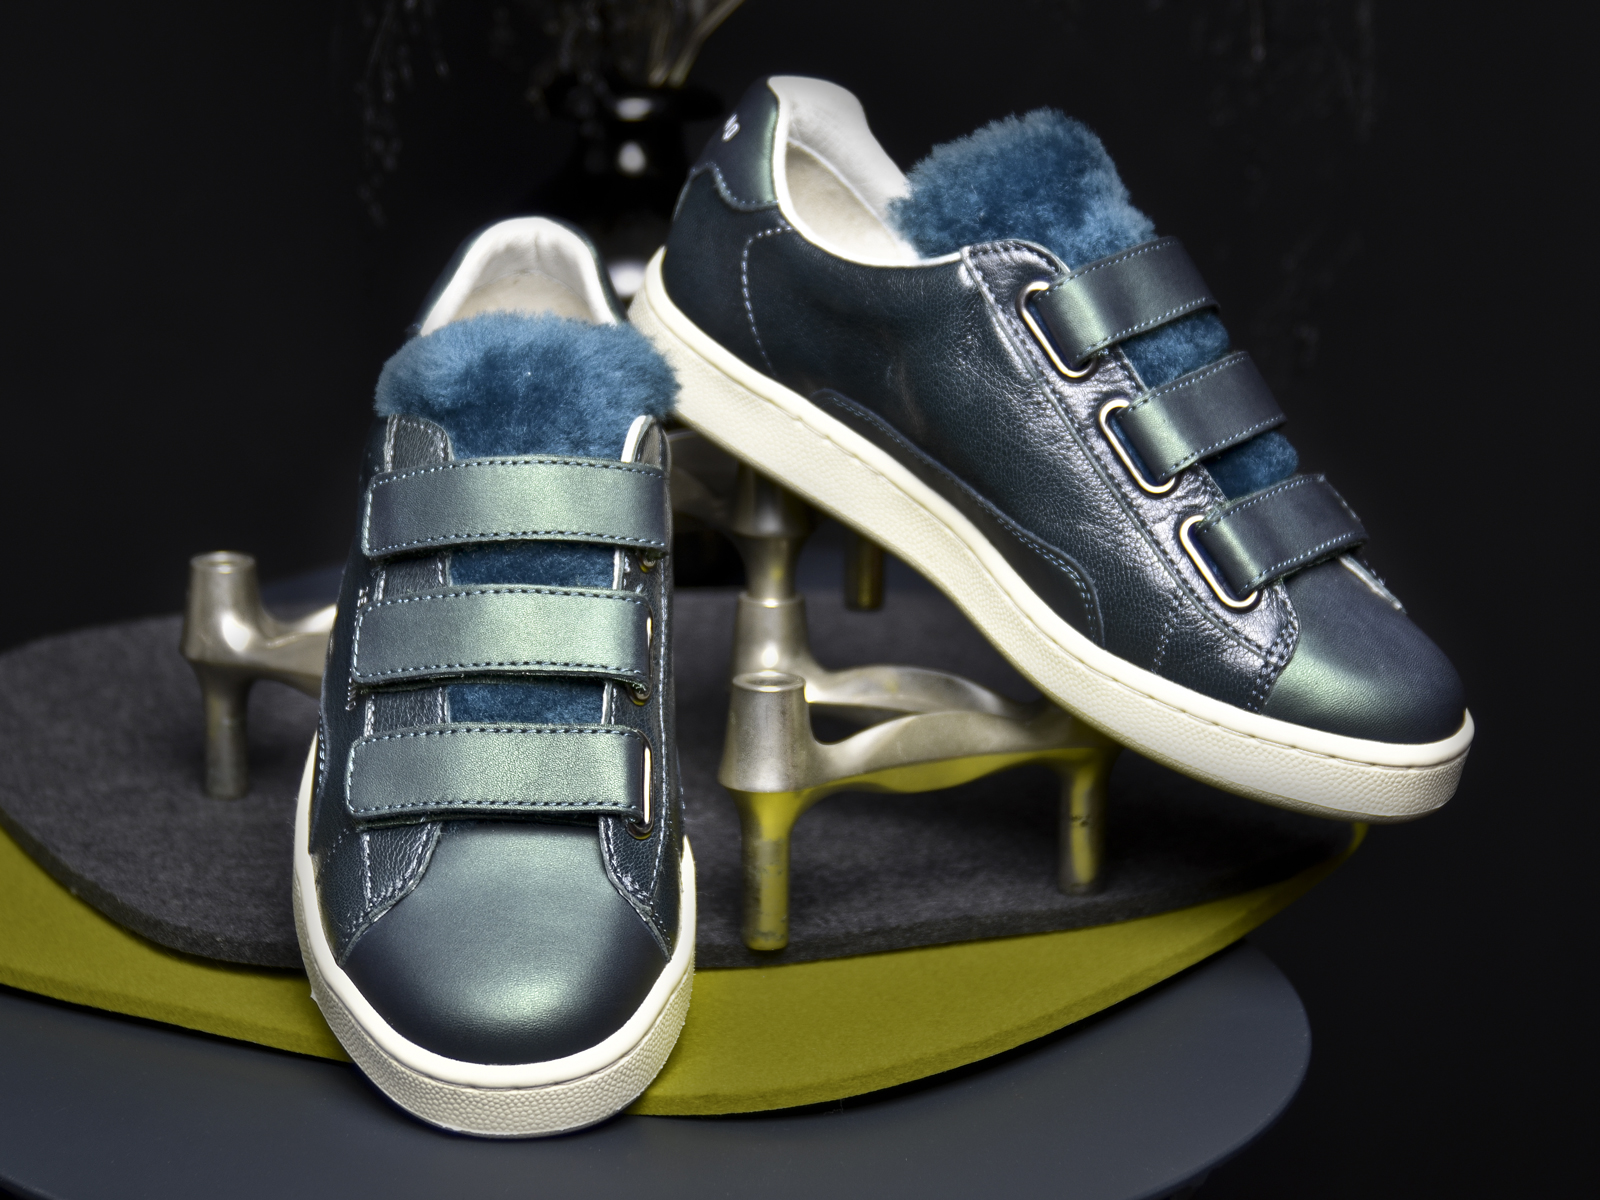 selection-chaussures-hiver-0-105-sneakers